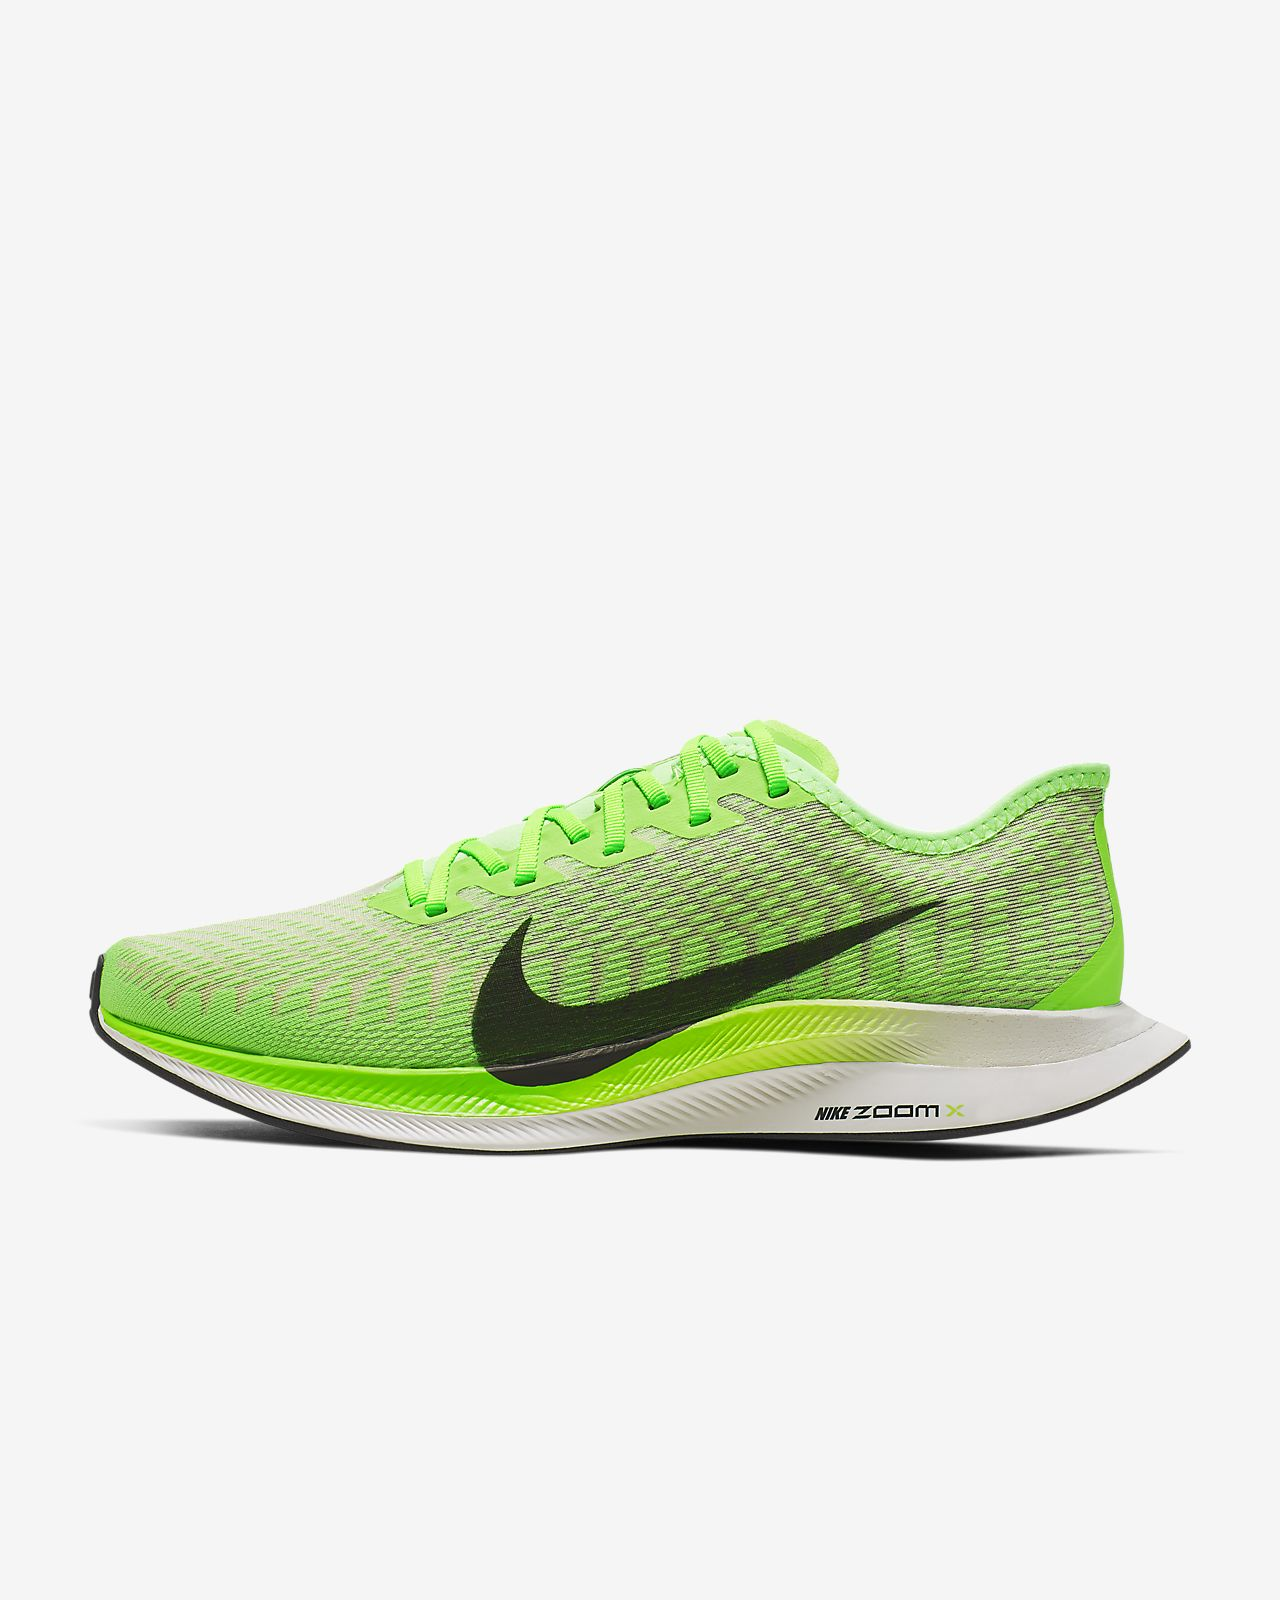 NIKE FREE RUN 4.0 V2, Gr. 41 (UK 7) EUR 40,00 | PicClick DE